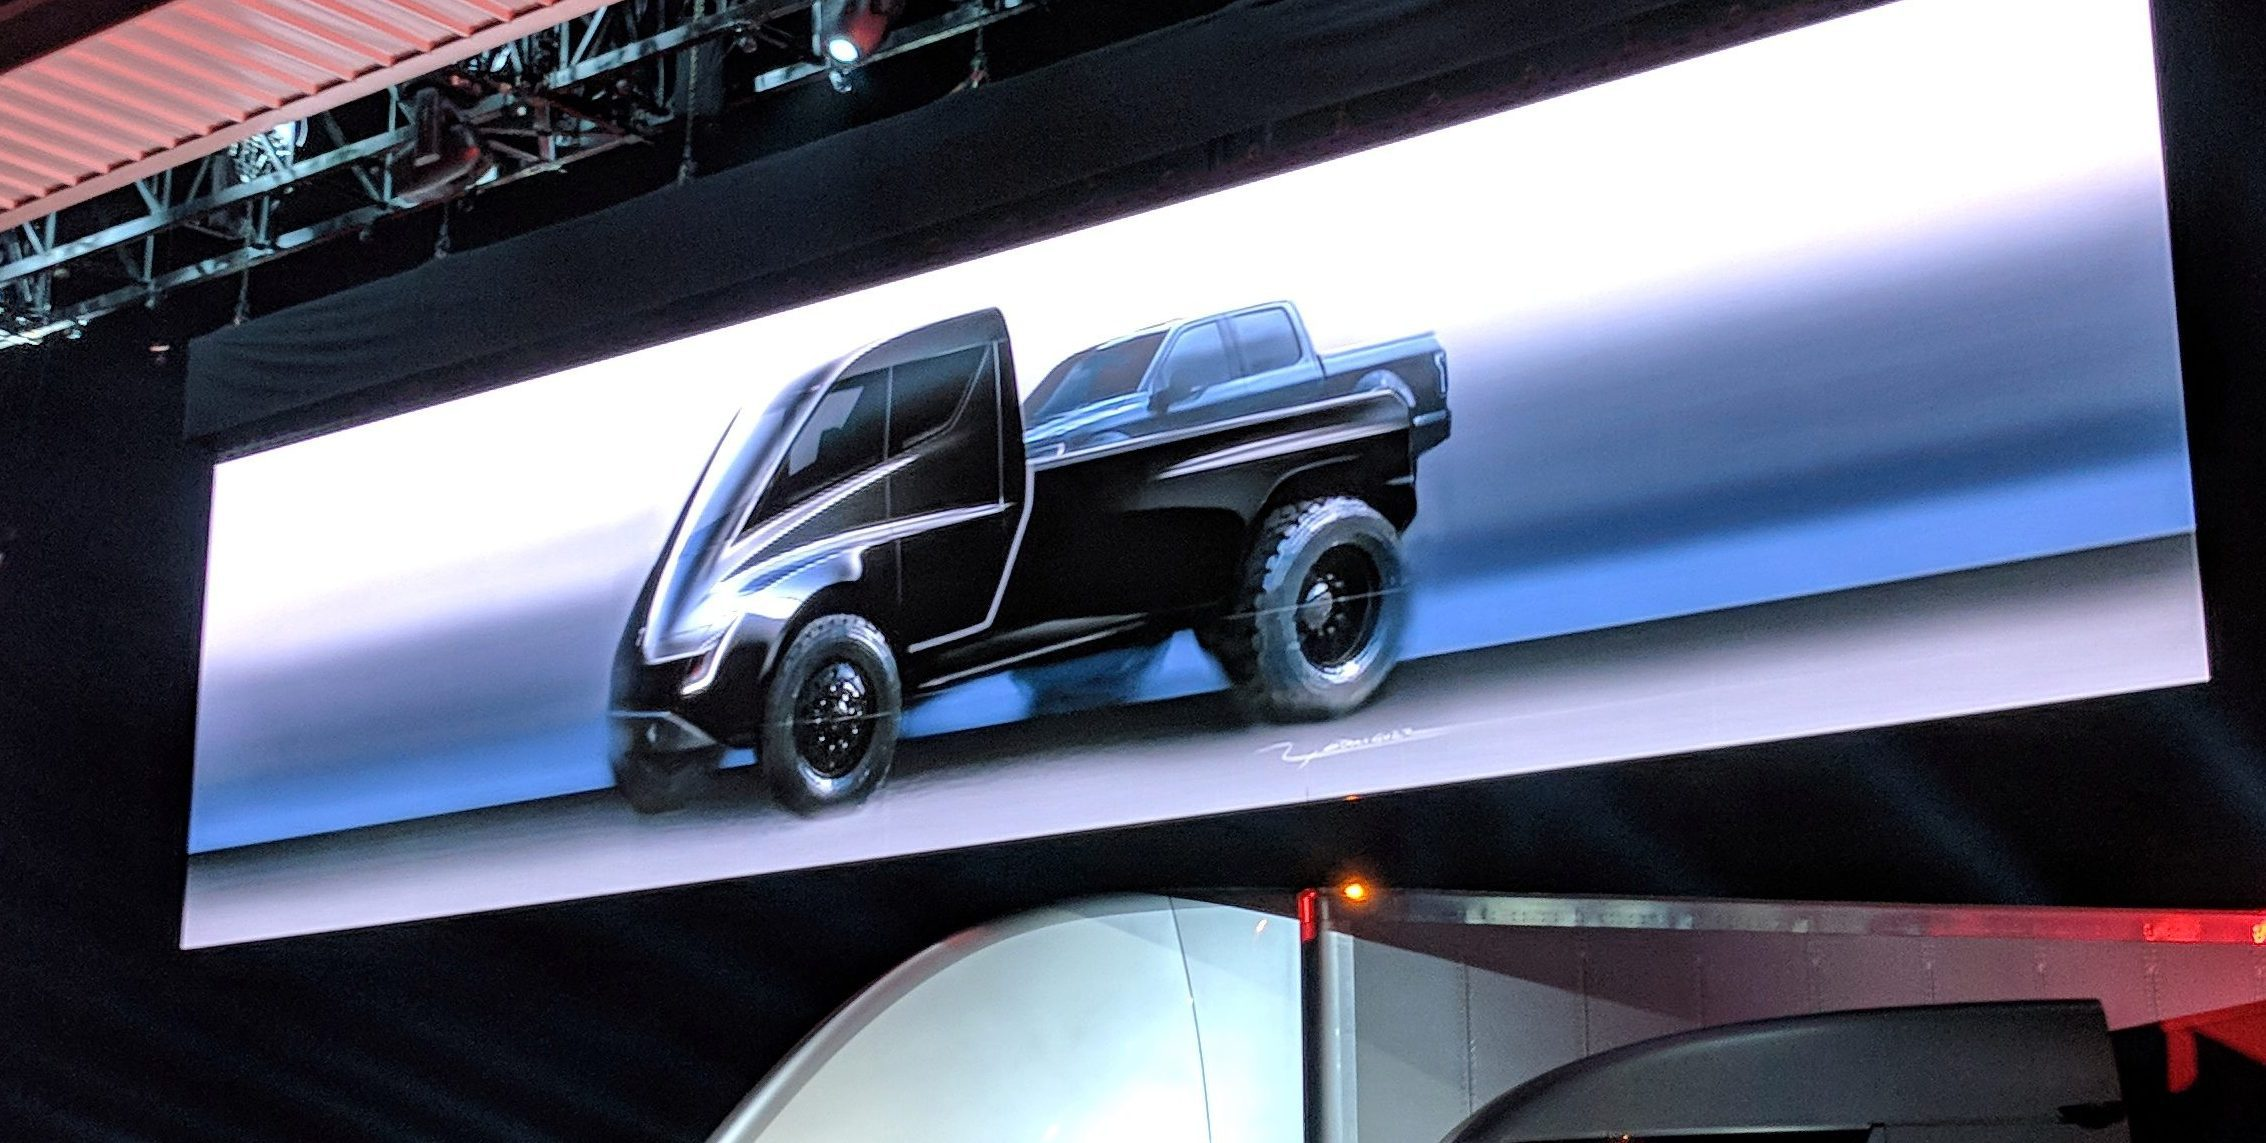 Tesla 'might' unveil electric pickup truck prototype in 2019, says Elon Musk